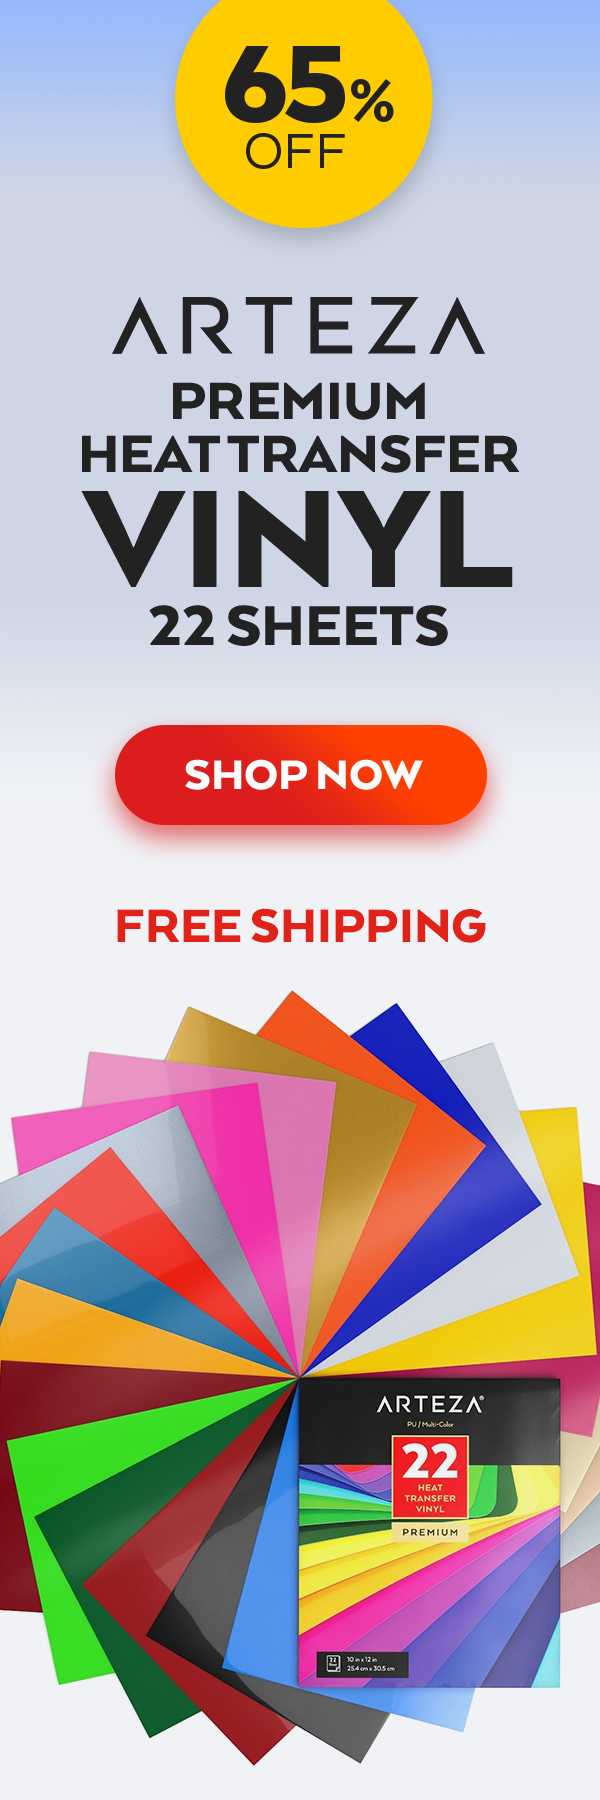 Arteza Heat Transfer Vinyl Heat Transfer Vinyl 22 Sheets Assorted Colors 10x12 Diy